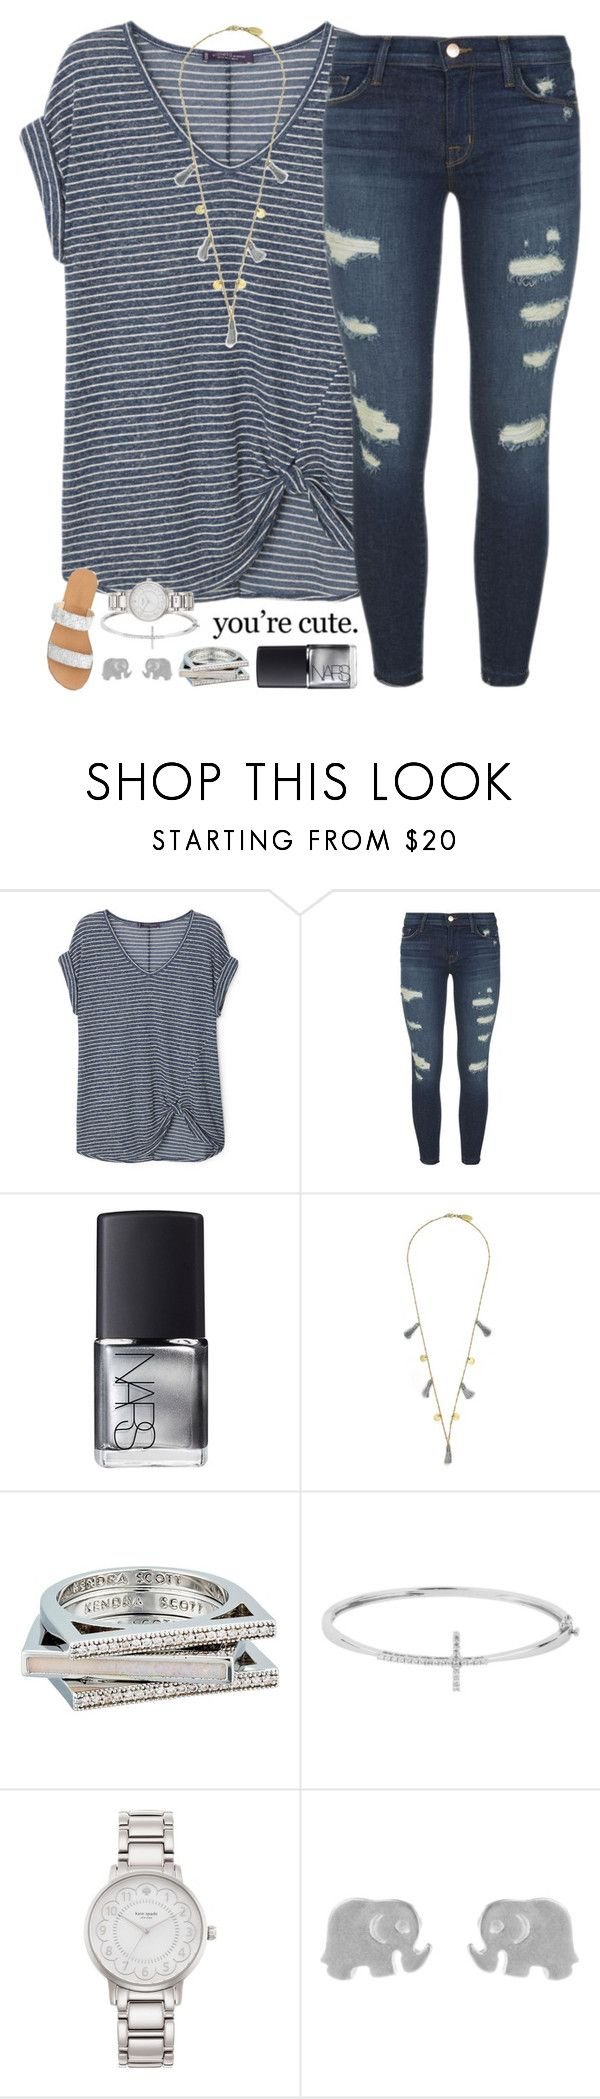 """""""You're cute."""" by lpackard ❤ liked on Polyvore featuring Violeta by Mango, J Brand, NARS Cosmetics, Feather & Stone, Kendra Scott, Reeds Jewelers, Kate Spade, Dogeared and J.Crew"""